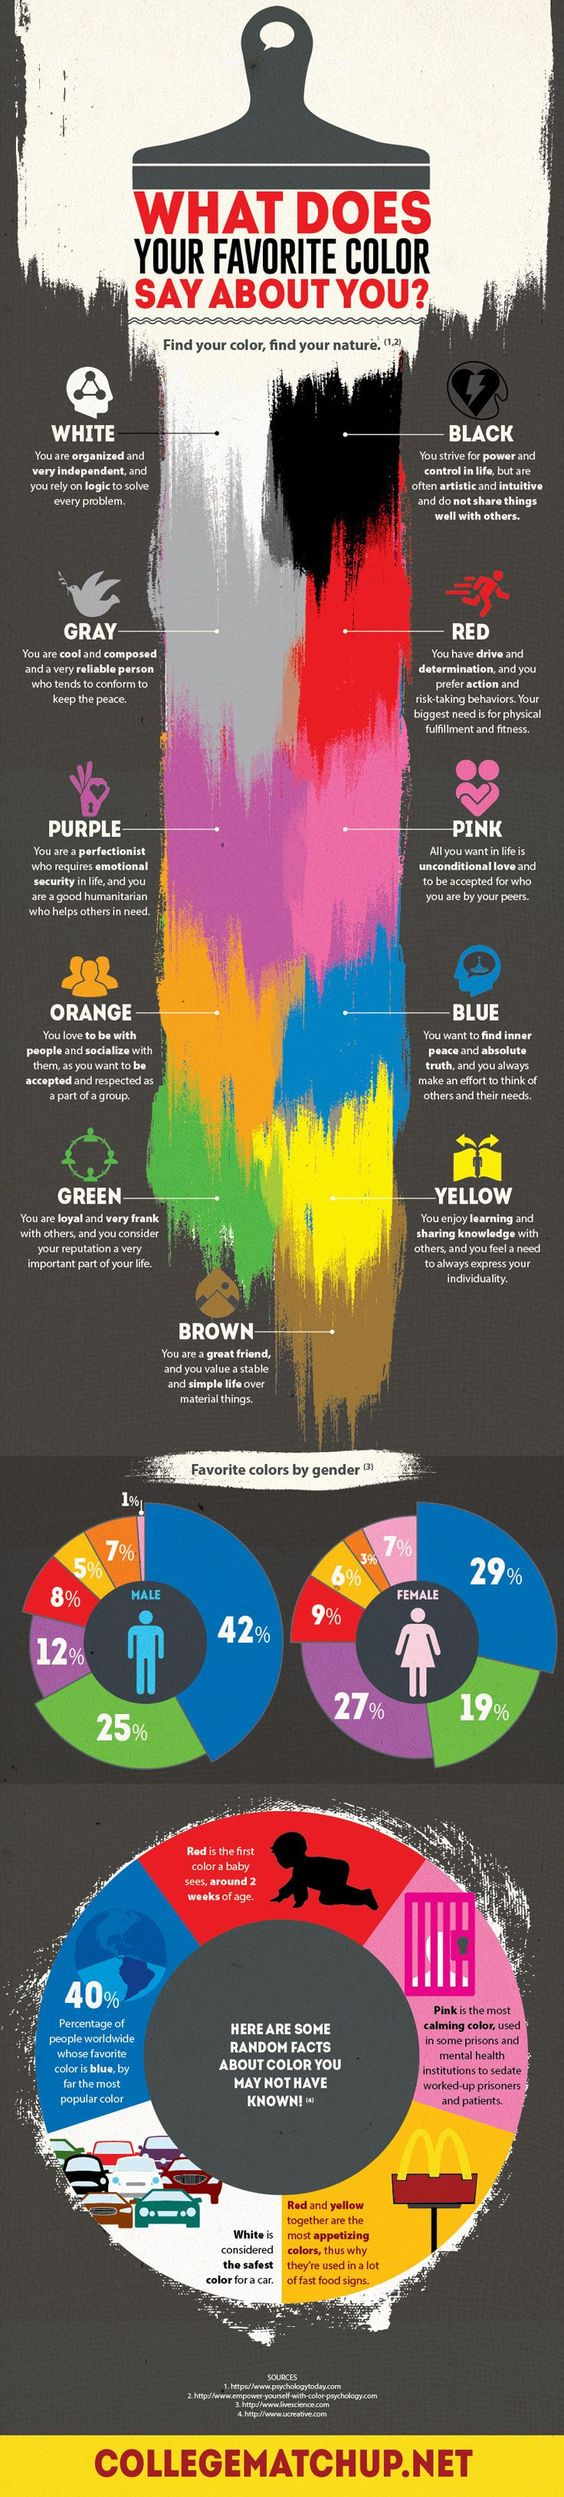 What Does Your Favorite Color Say About You? [infographic]